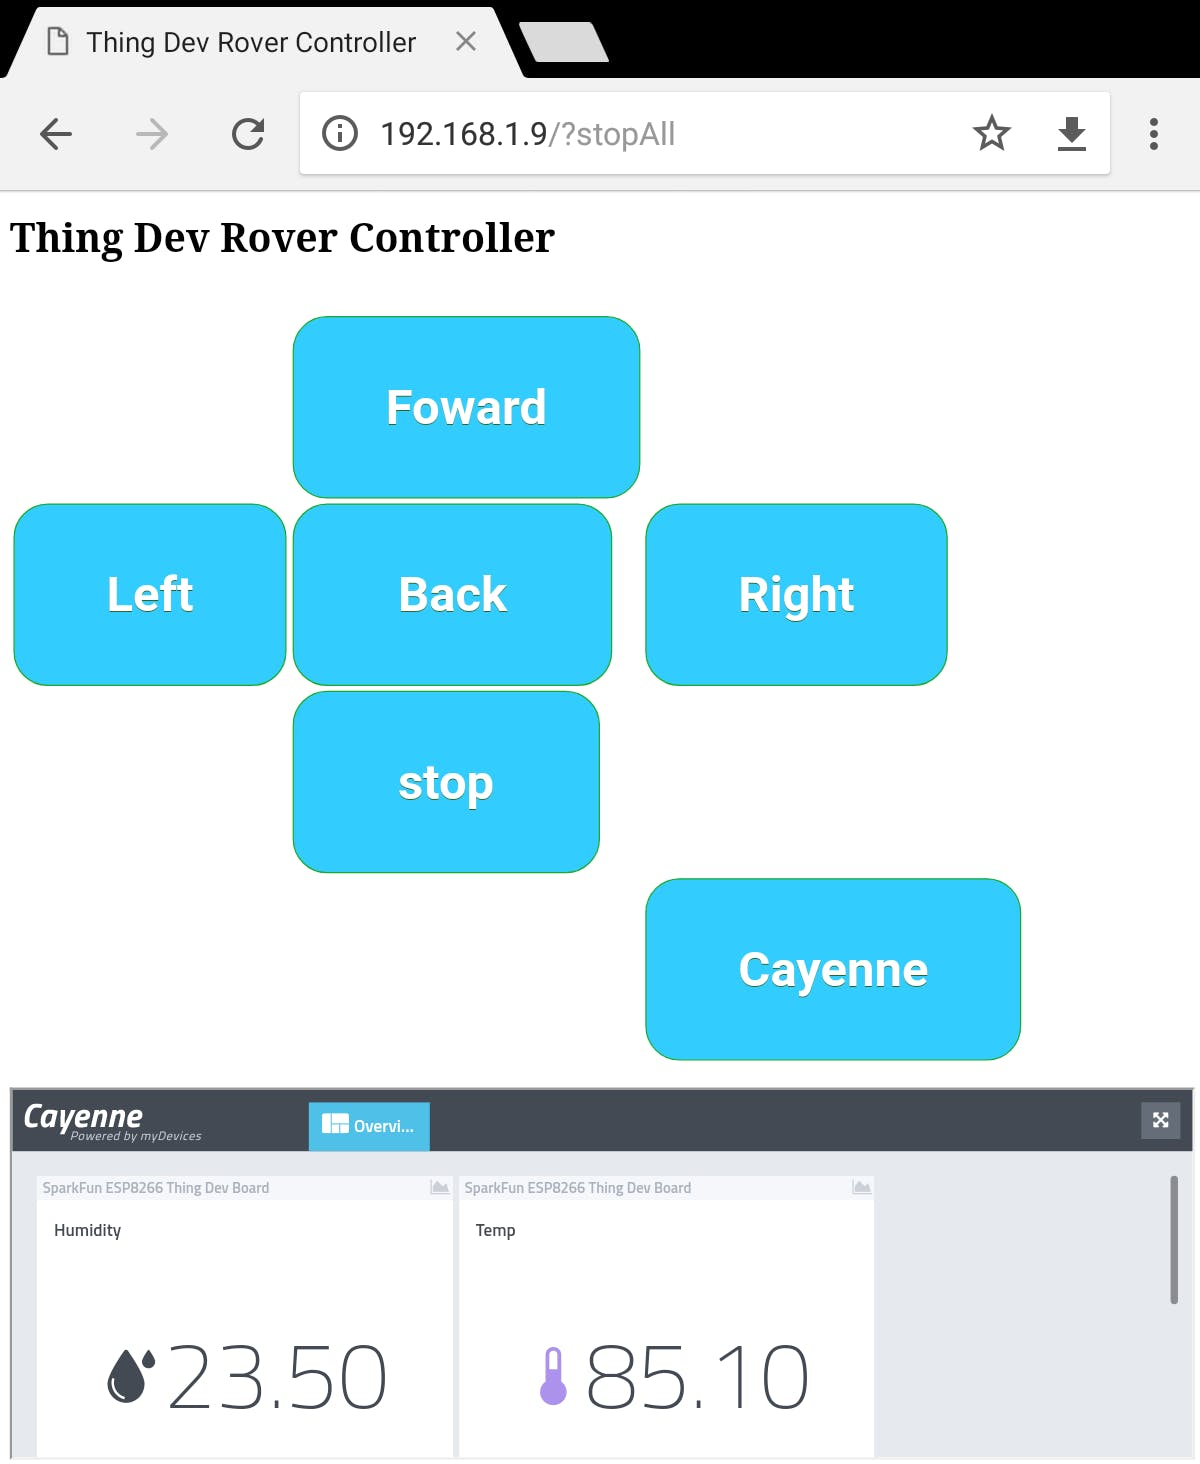 Web Application to Control the Rover